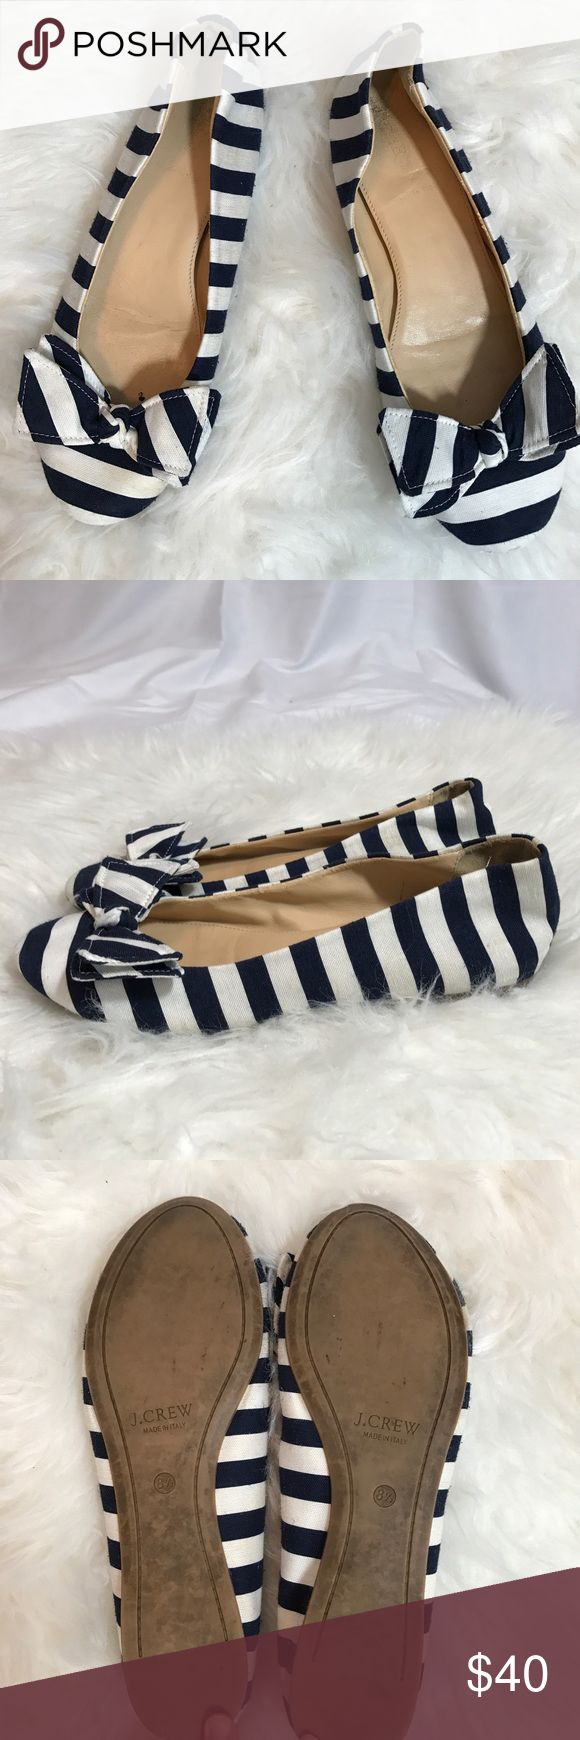 J Crew Striped Bow Flats Ballet flat shoes style with Nautical canvas, black and white Stripes. made in Italy. There is little scuffs as shown on the last picture. J. Crew Shoes Flats & Loafers